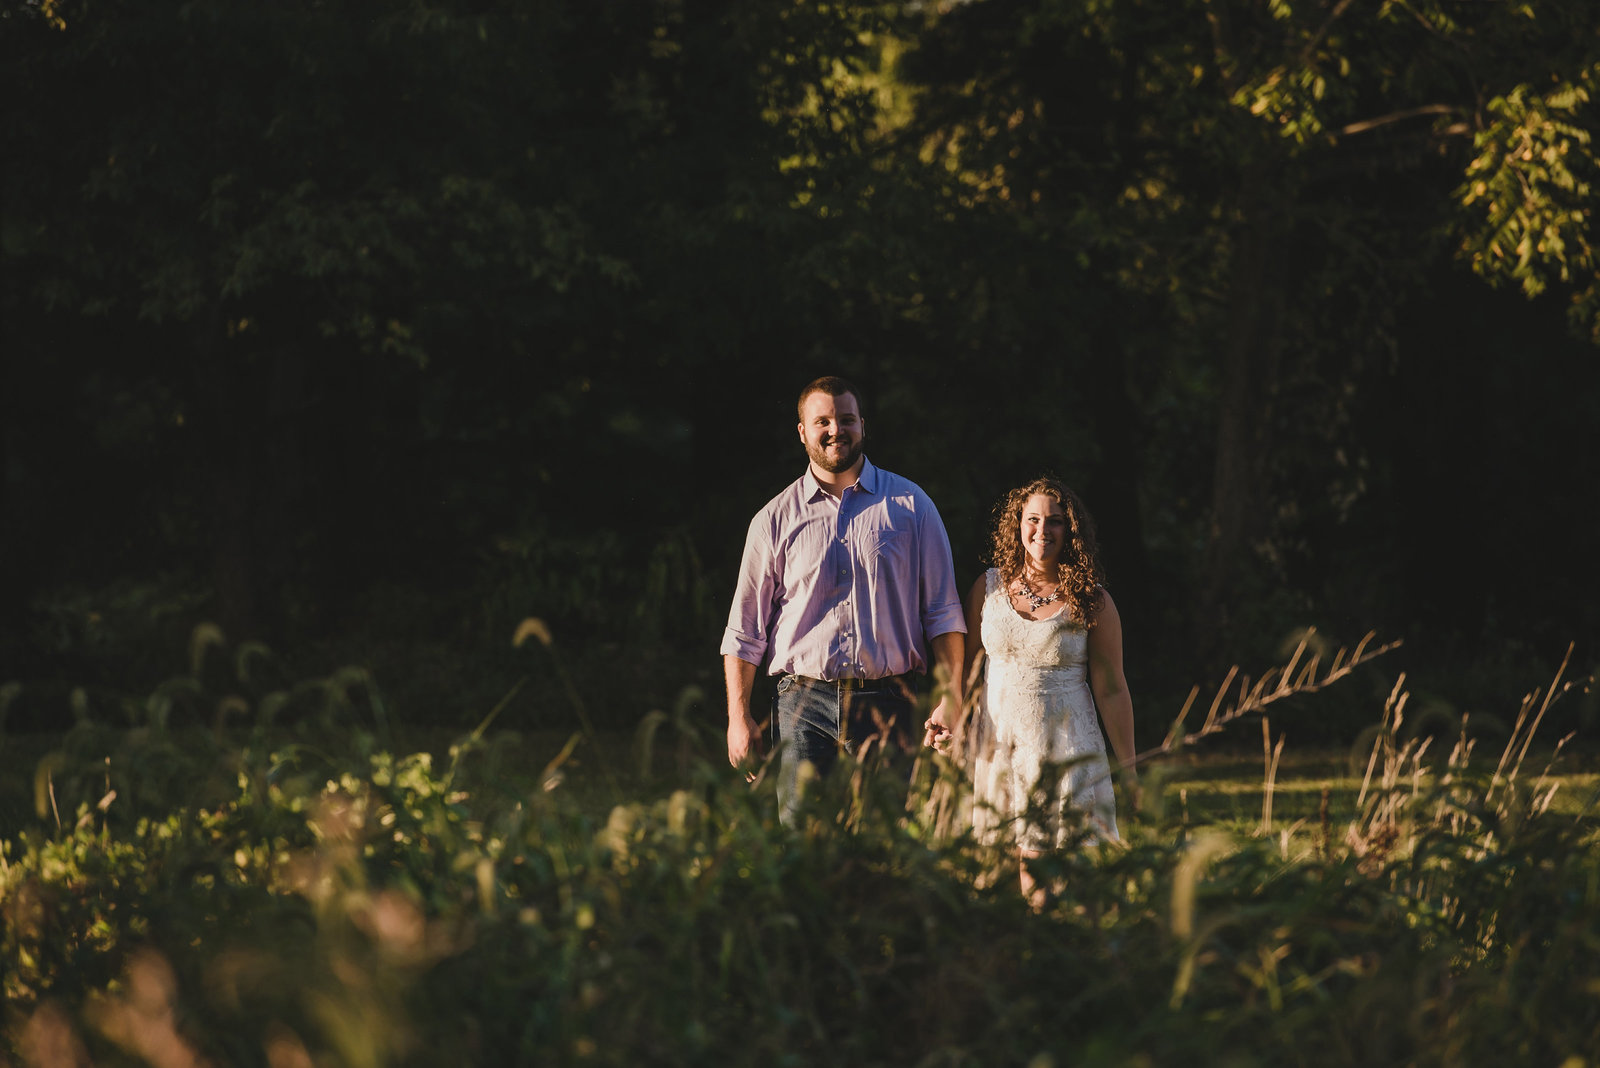 NJ_Rustic_Engagement_Photography099